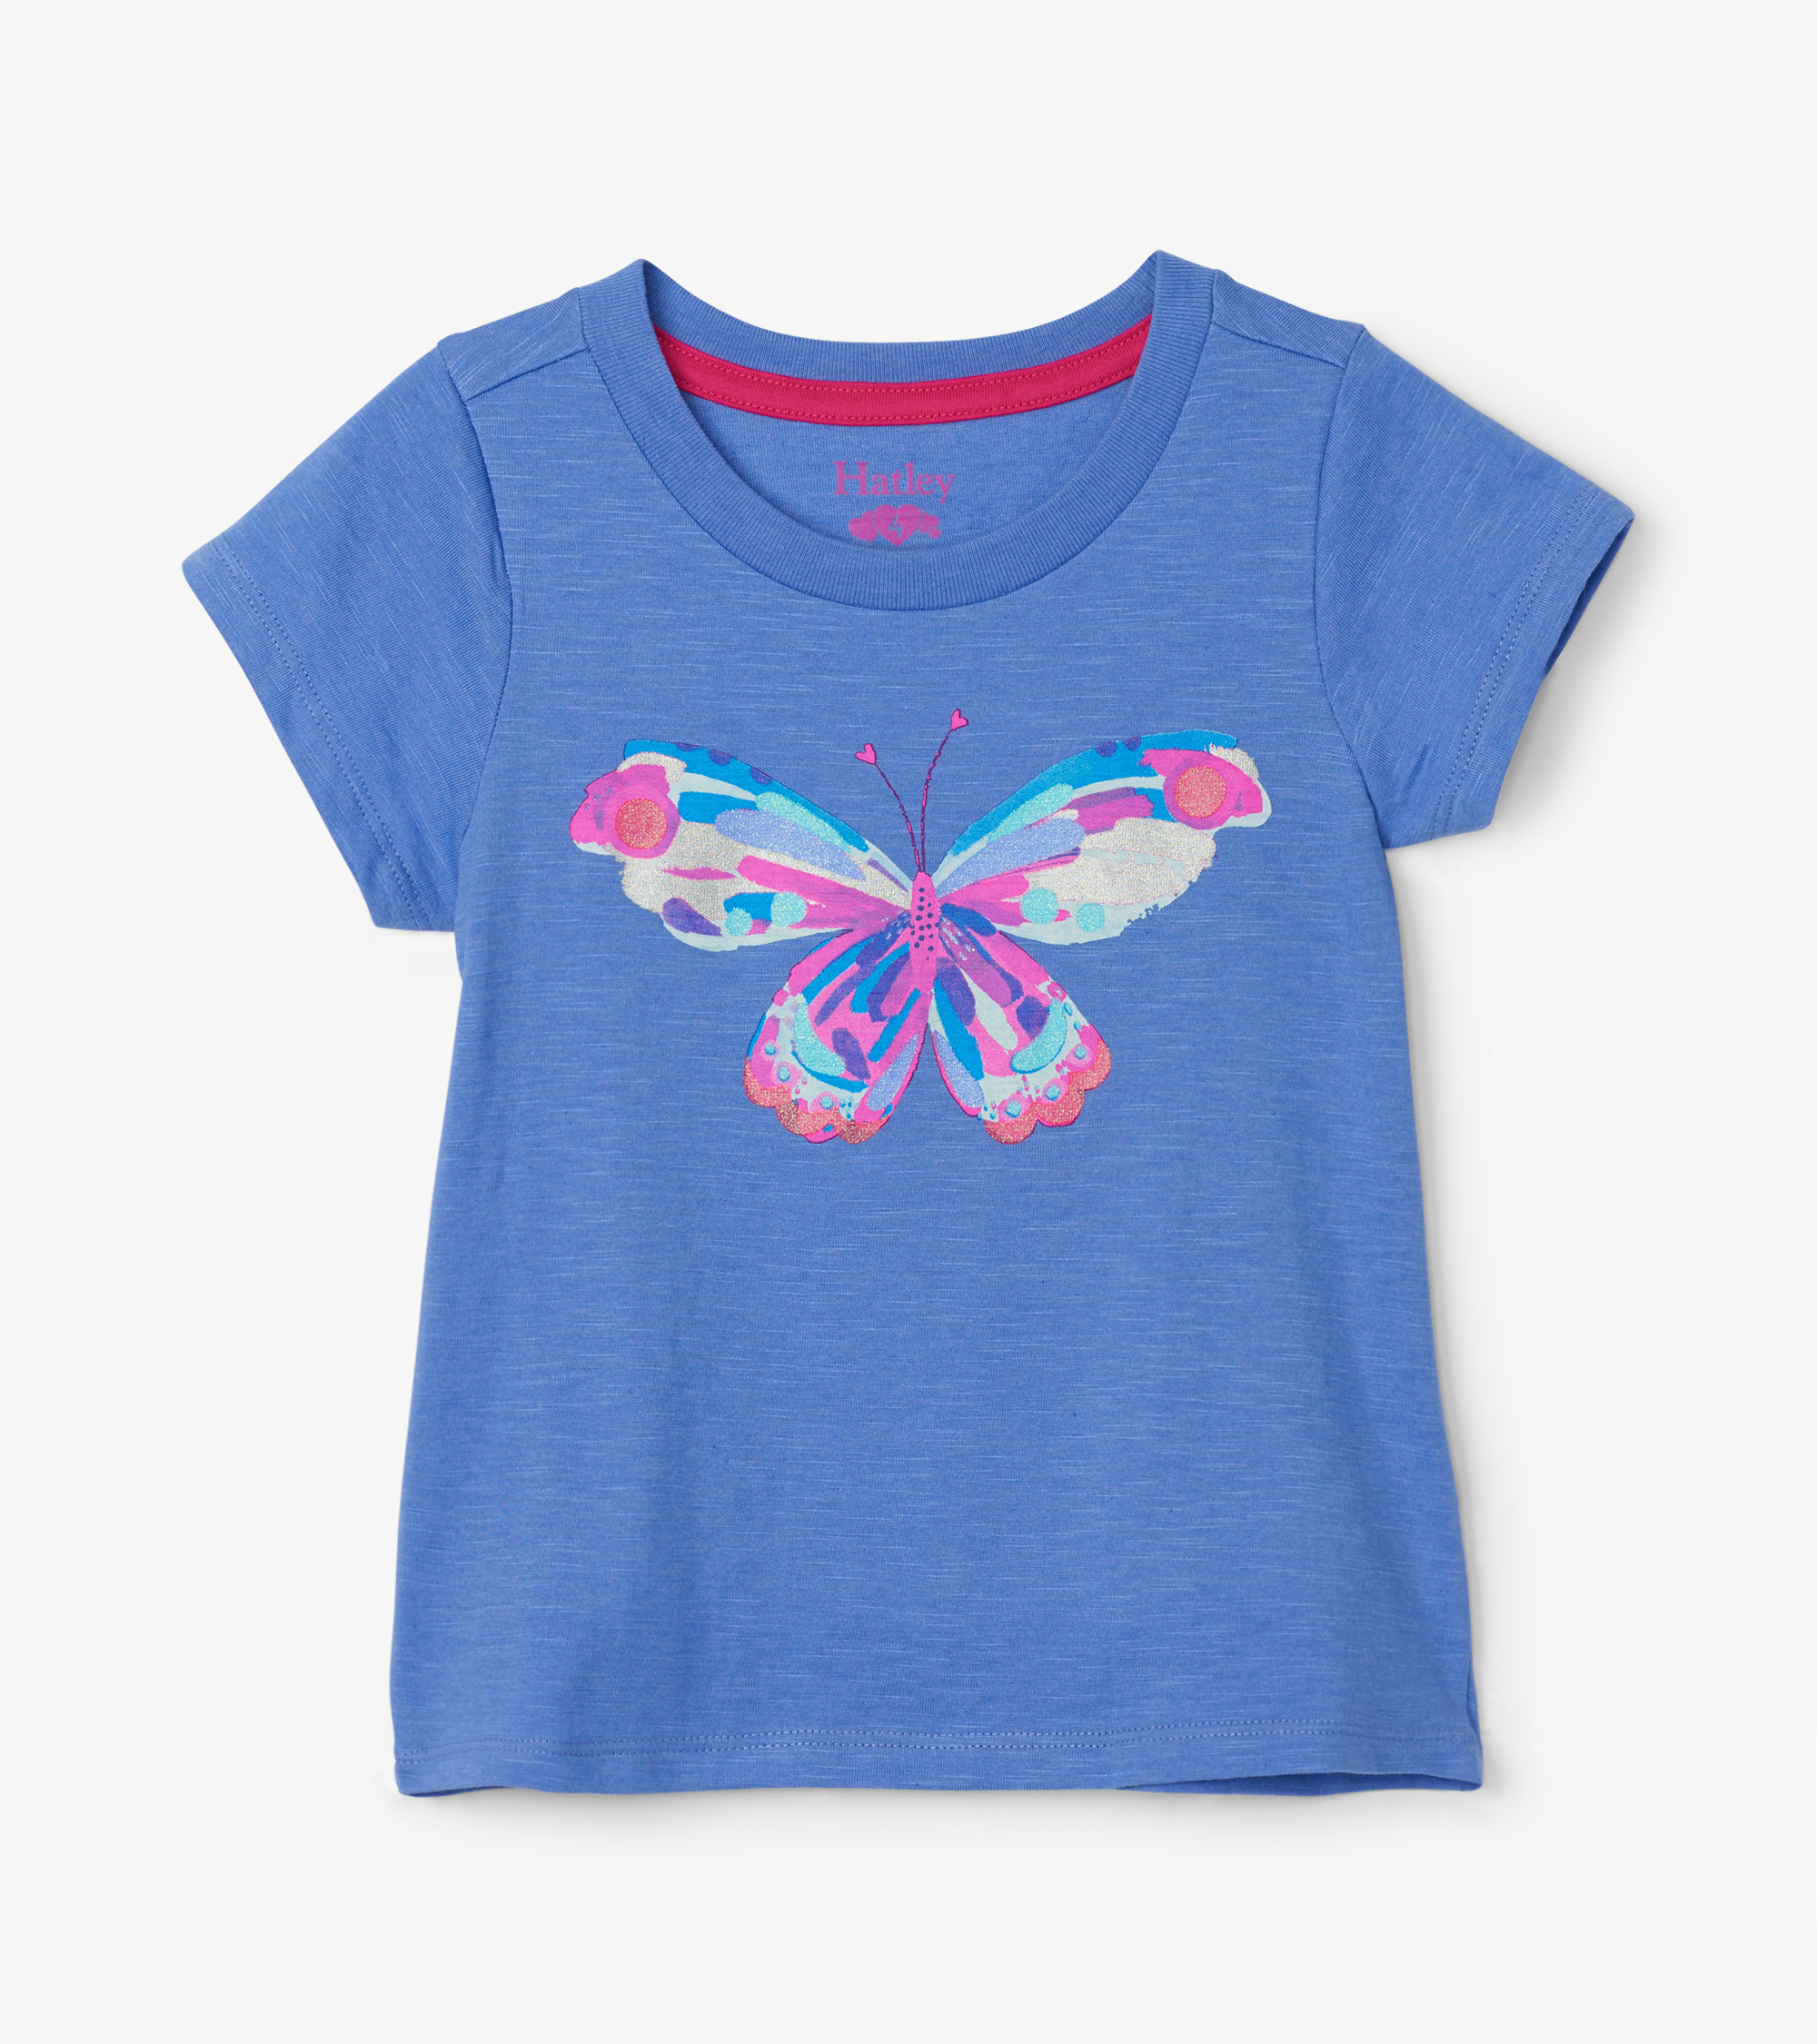 NOW £13 Hatley Soaring Butterfly Graphic Tee